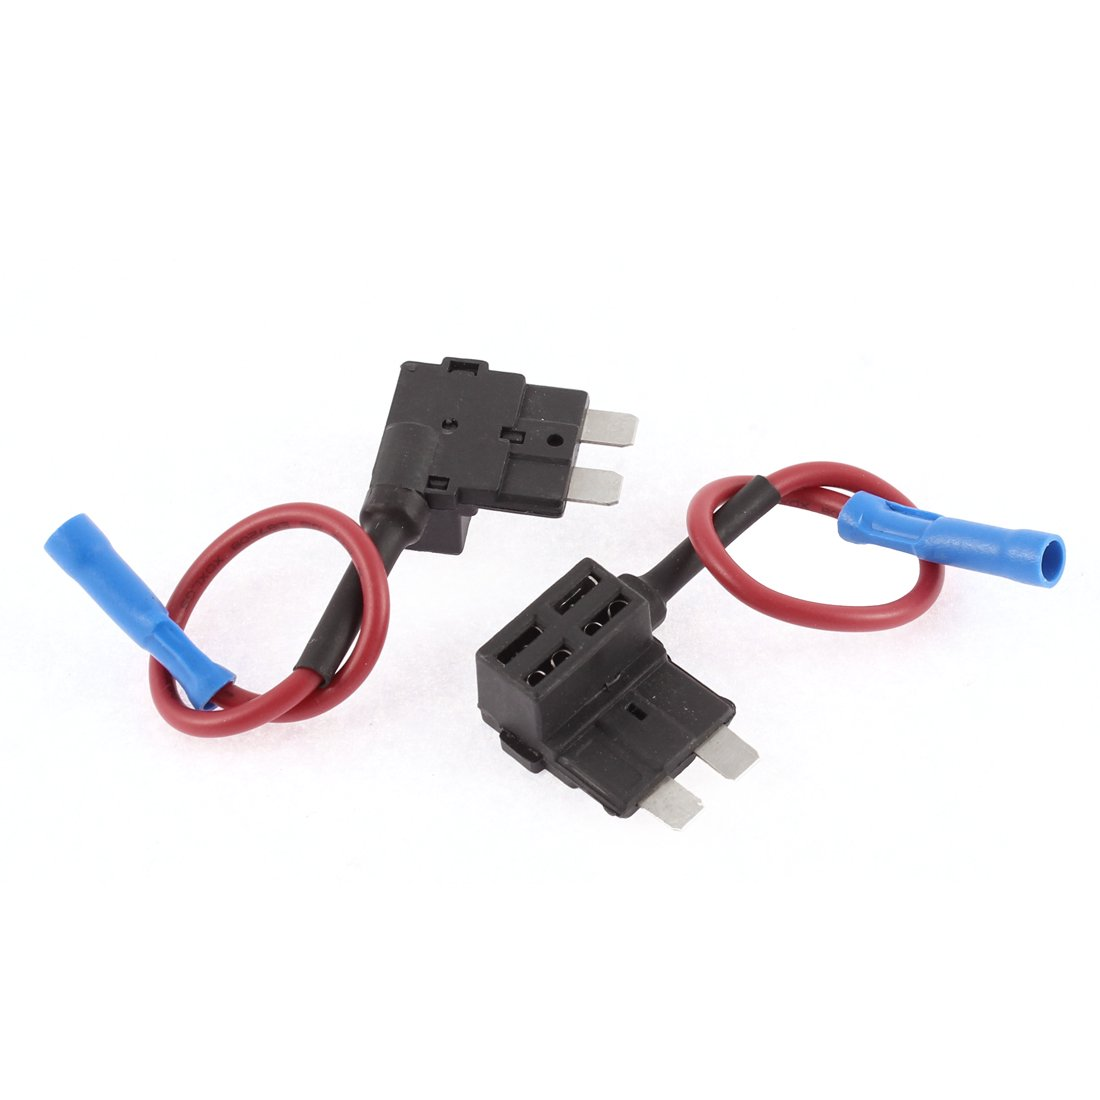 Auto Car Add-A-Circuit TAP Adapter Standard Blade Fuse ... Adapter For Automotive Fuse Box on